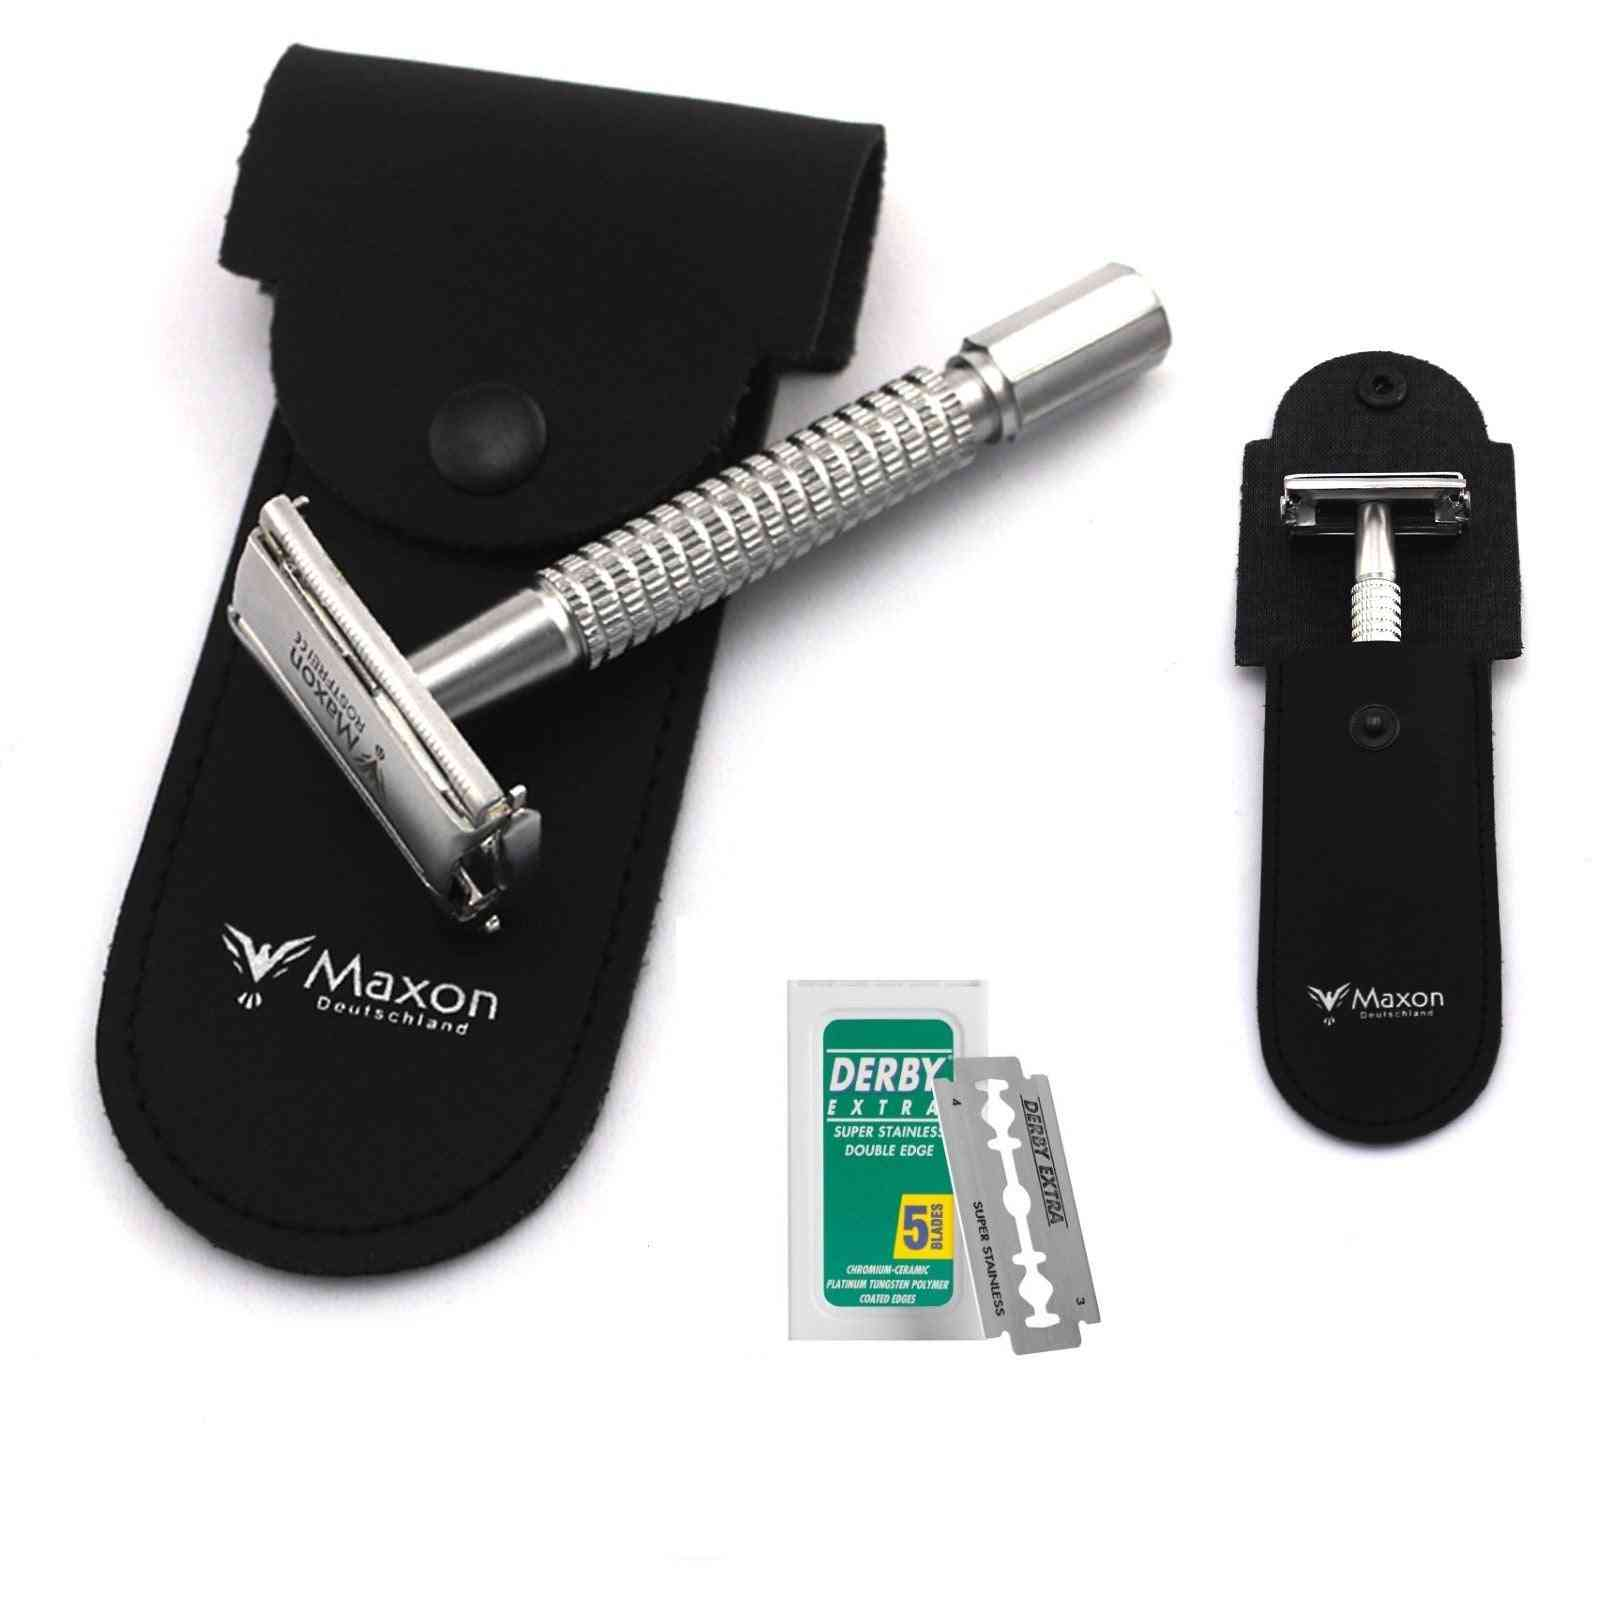 Maxon Scp Safety Razor With Blades And Leather Case